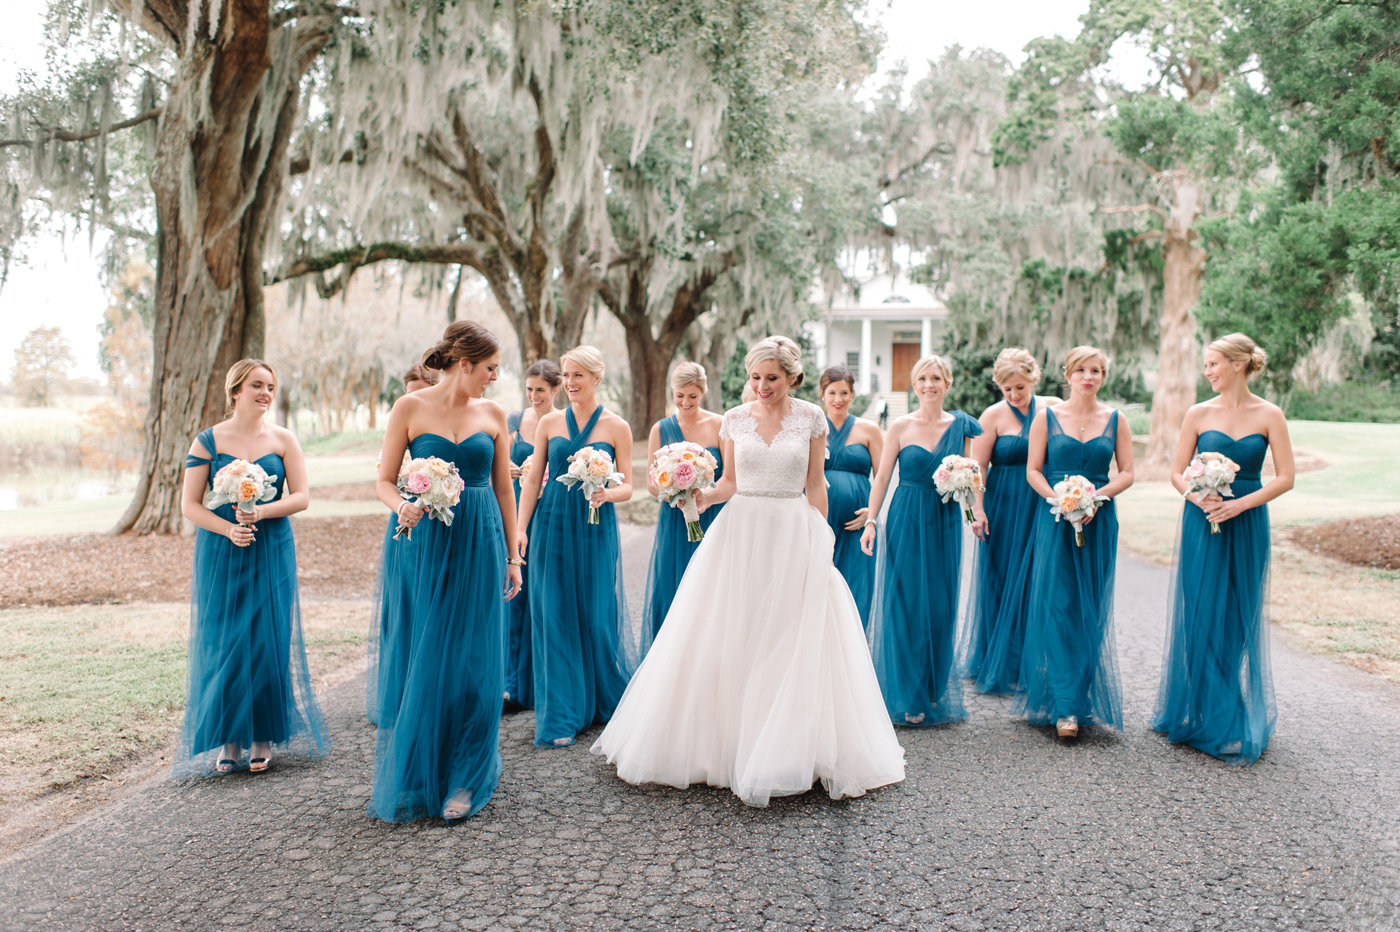 Charleston Wedding Photography | Charleston Wedding Photographers in South Carolina | Pasha Belman Photography-3